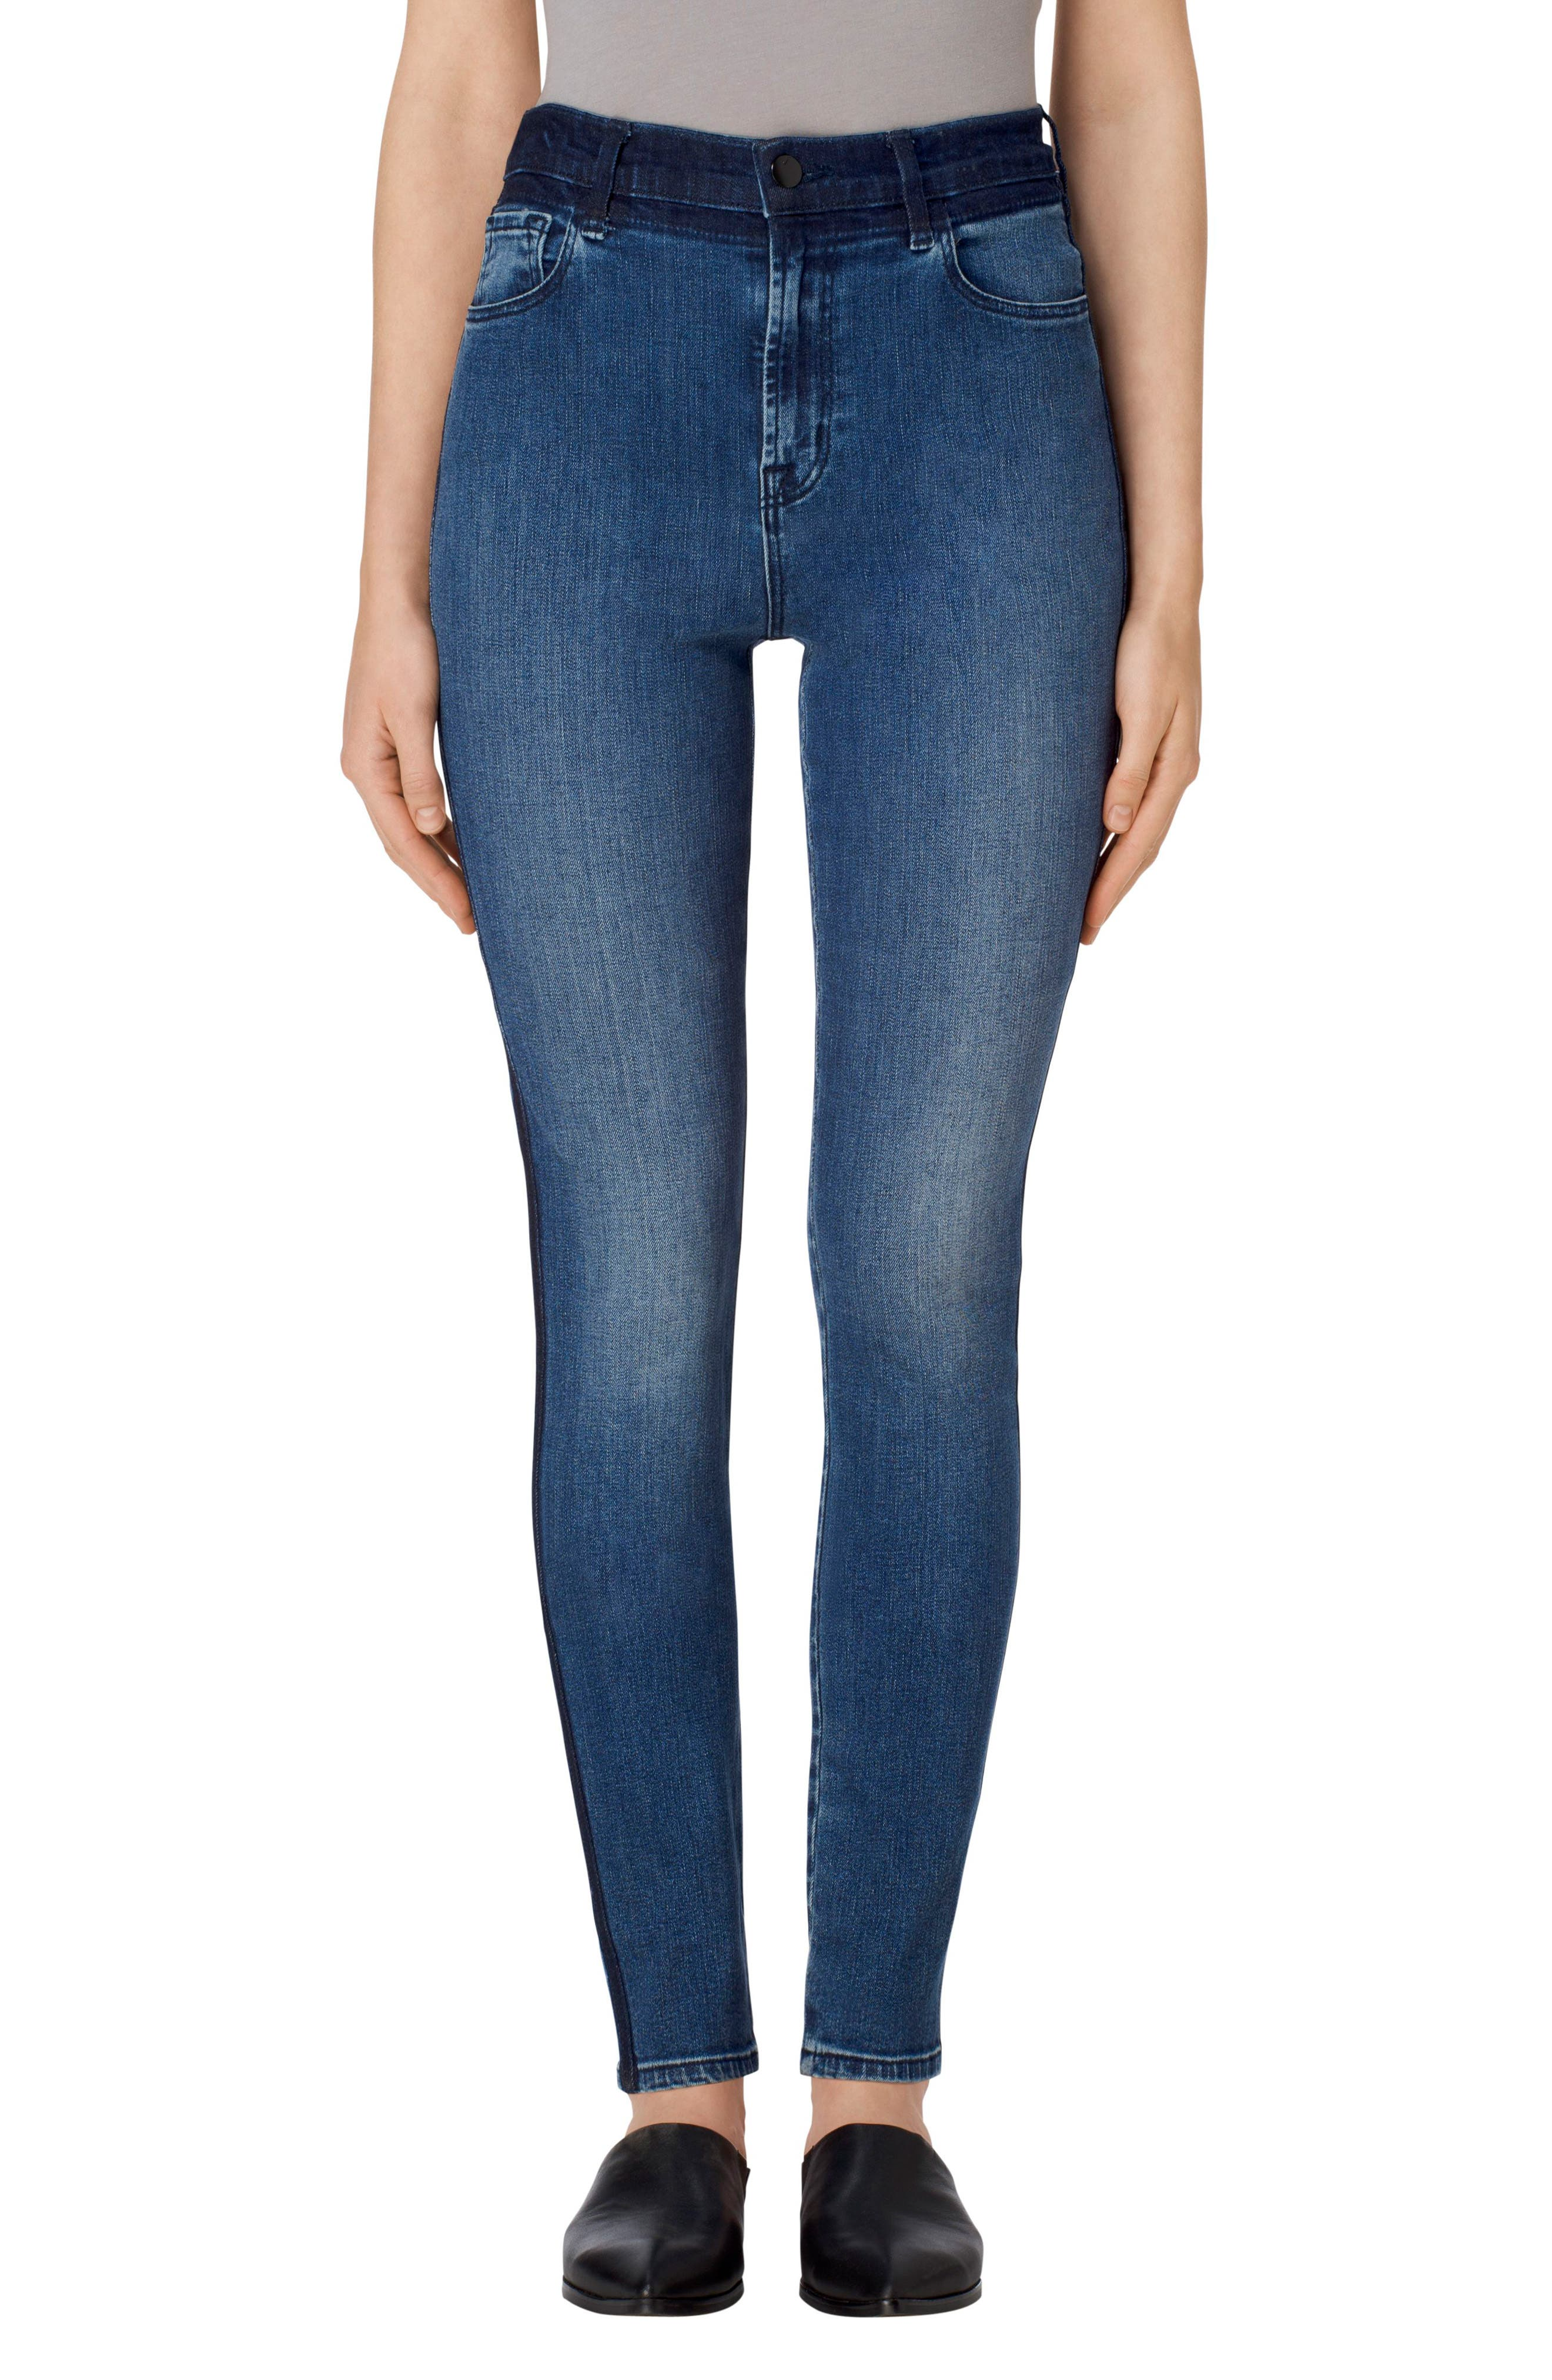 Alternate Image 1 Selected - J Brand Carolina Super High Rise Skinny Jeans (Gone)